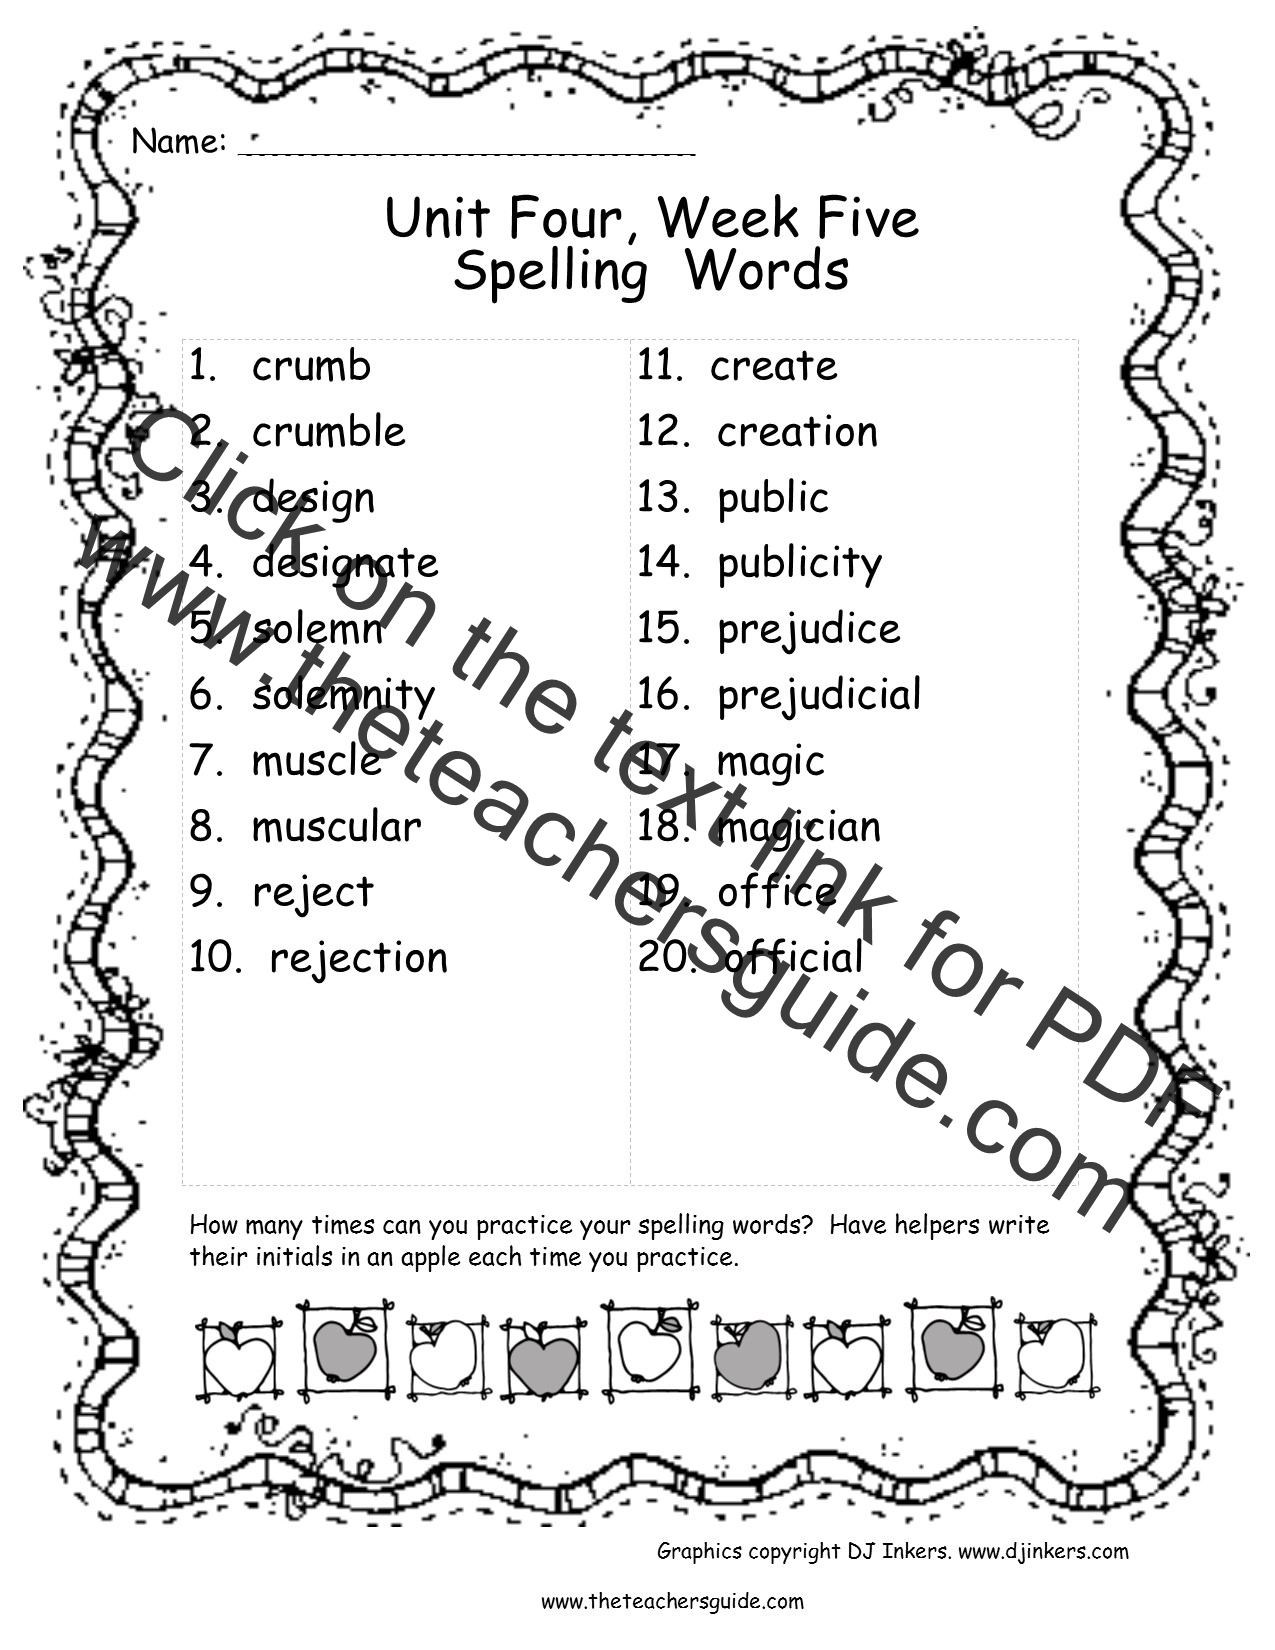 Spelling List For Students To Take Home